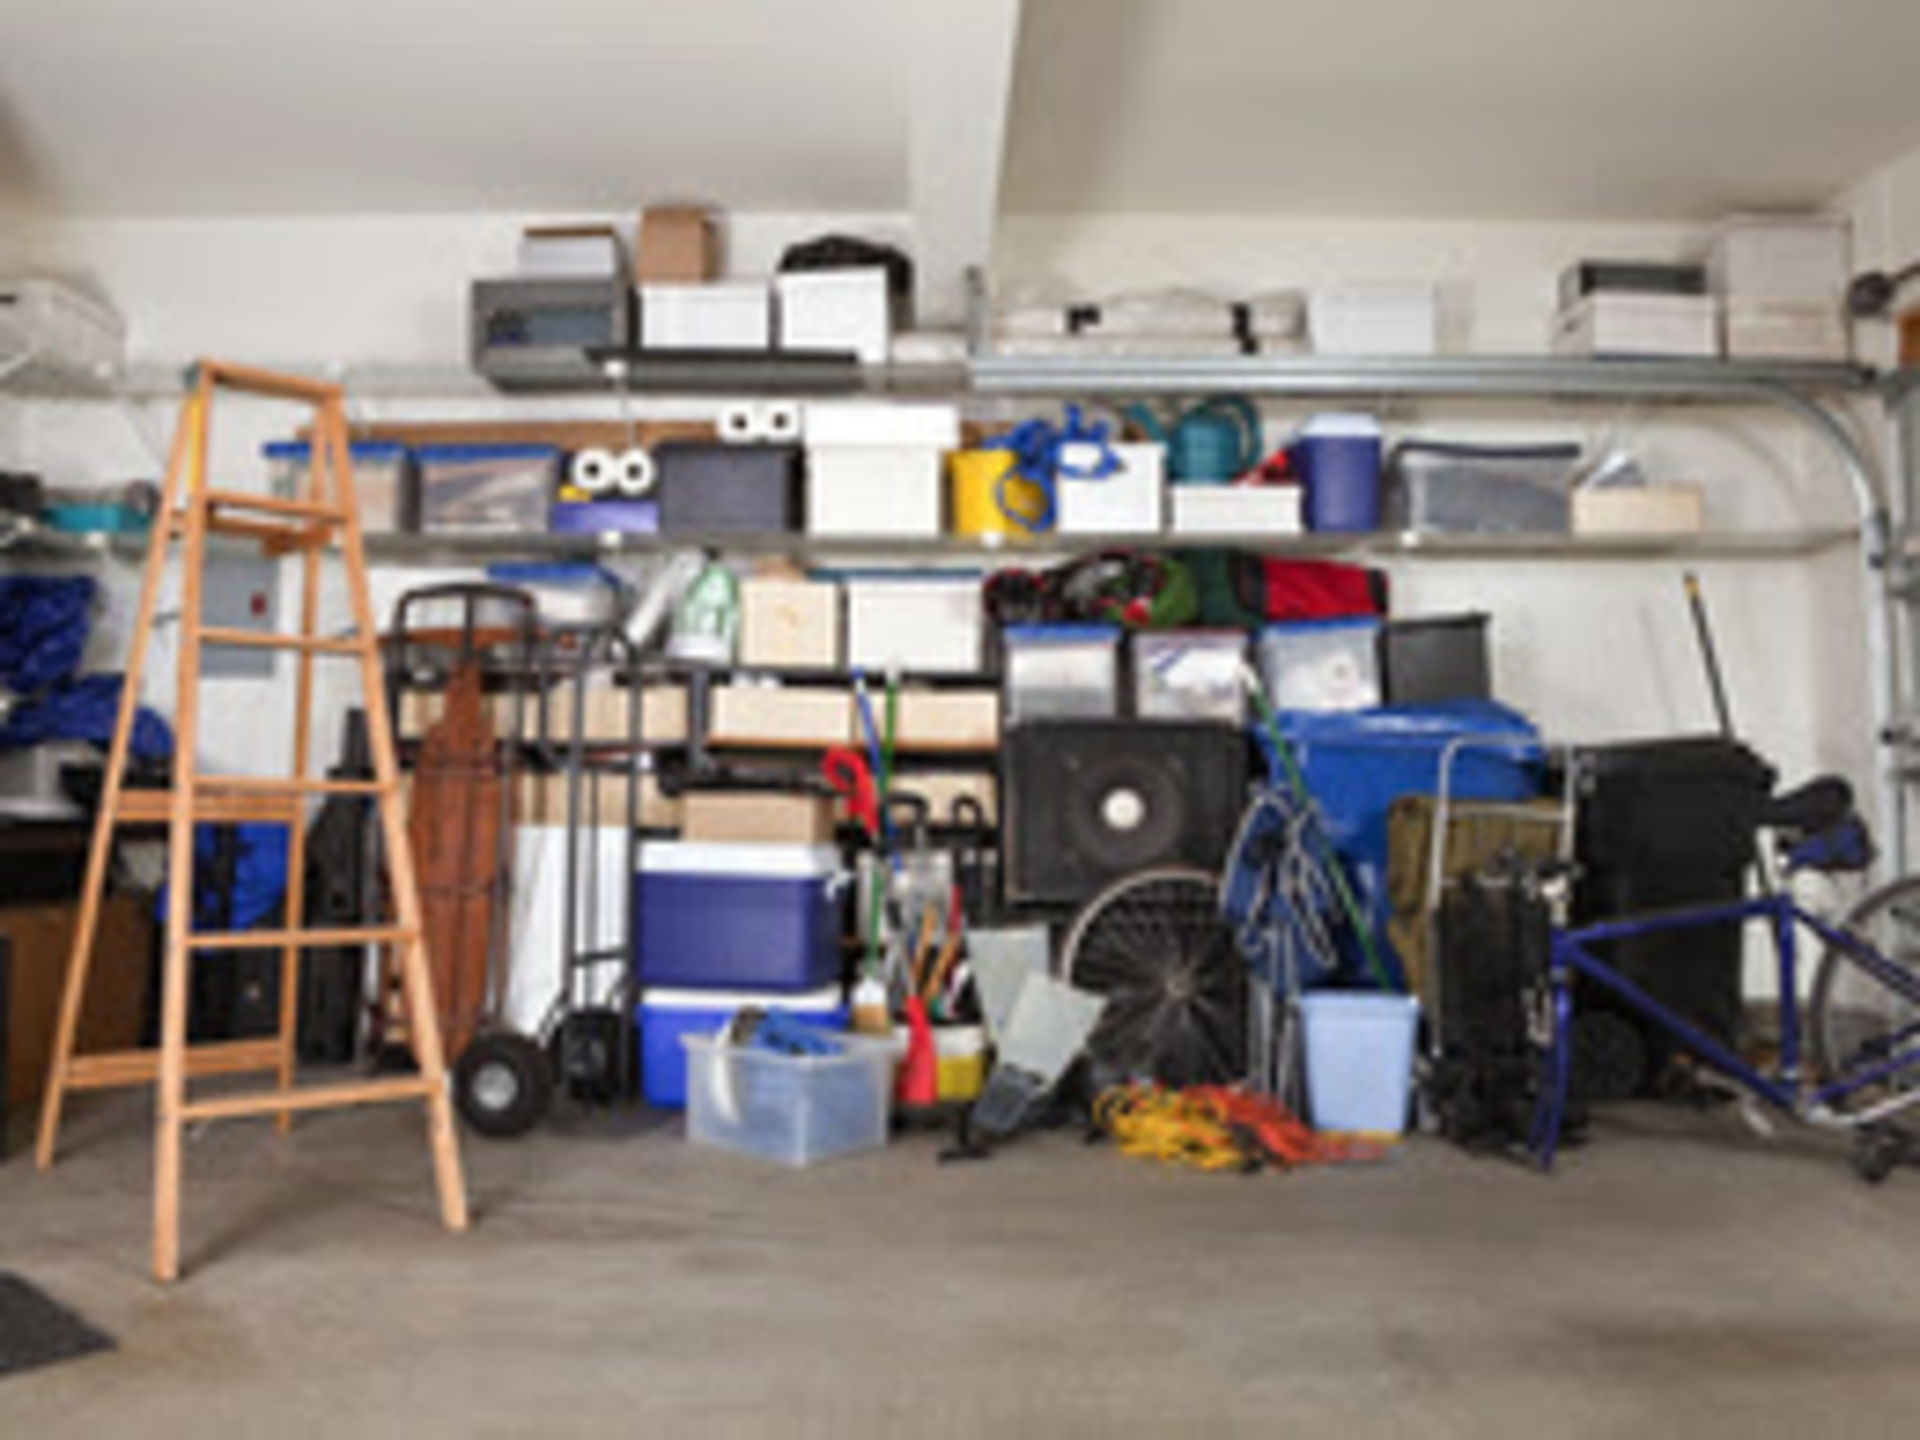 Storage Hacks to Clear Clutter